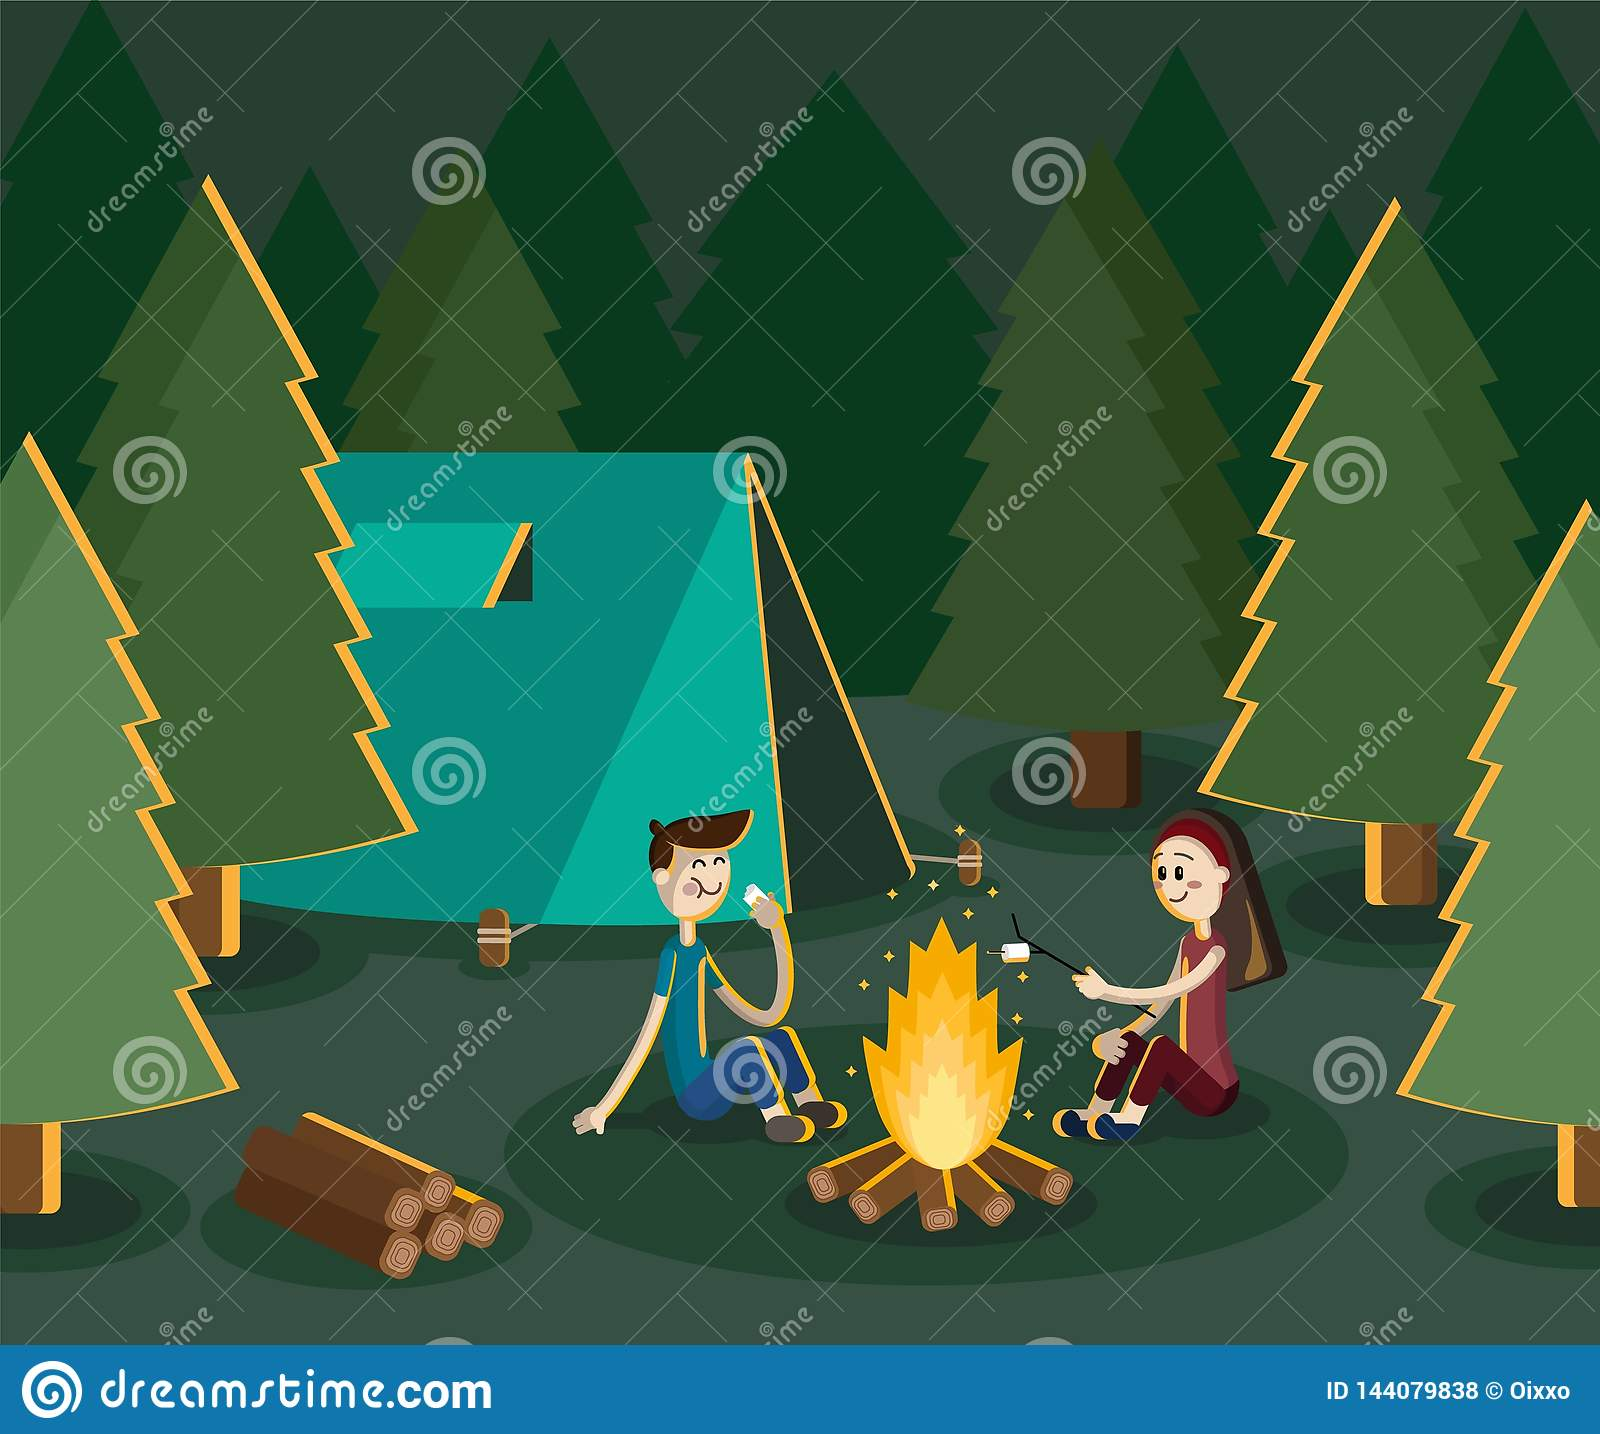 Boy and girl camping in the forest by the campfire. Vector flat illustration